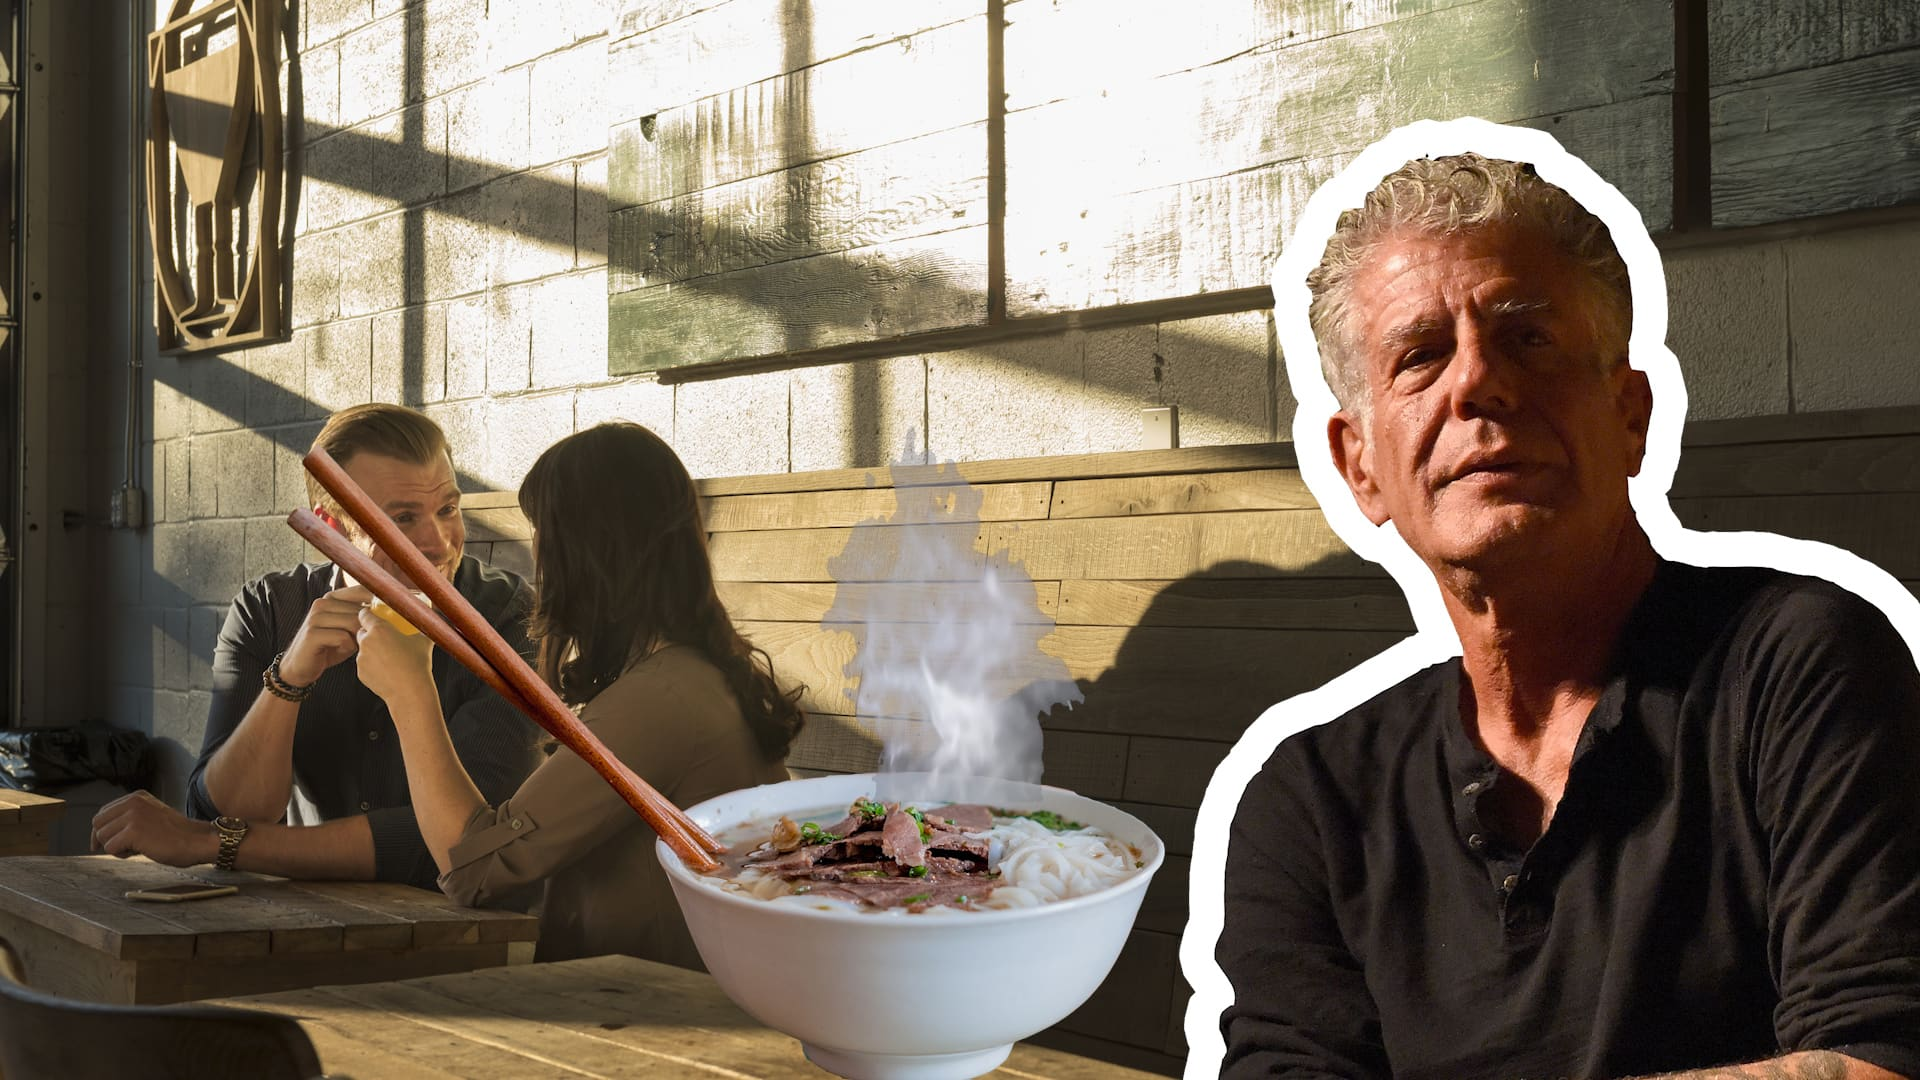 Anthony Bourdain scholarship will fund students' study of 'international cuisines and cultures'